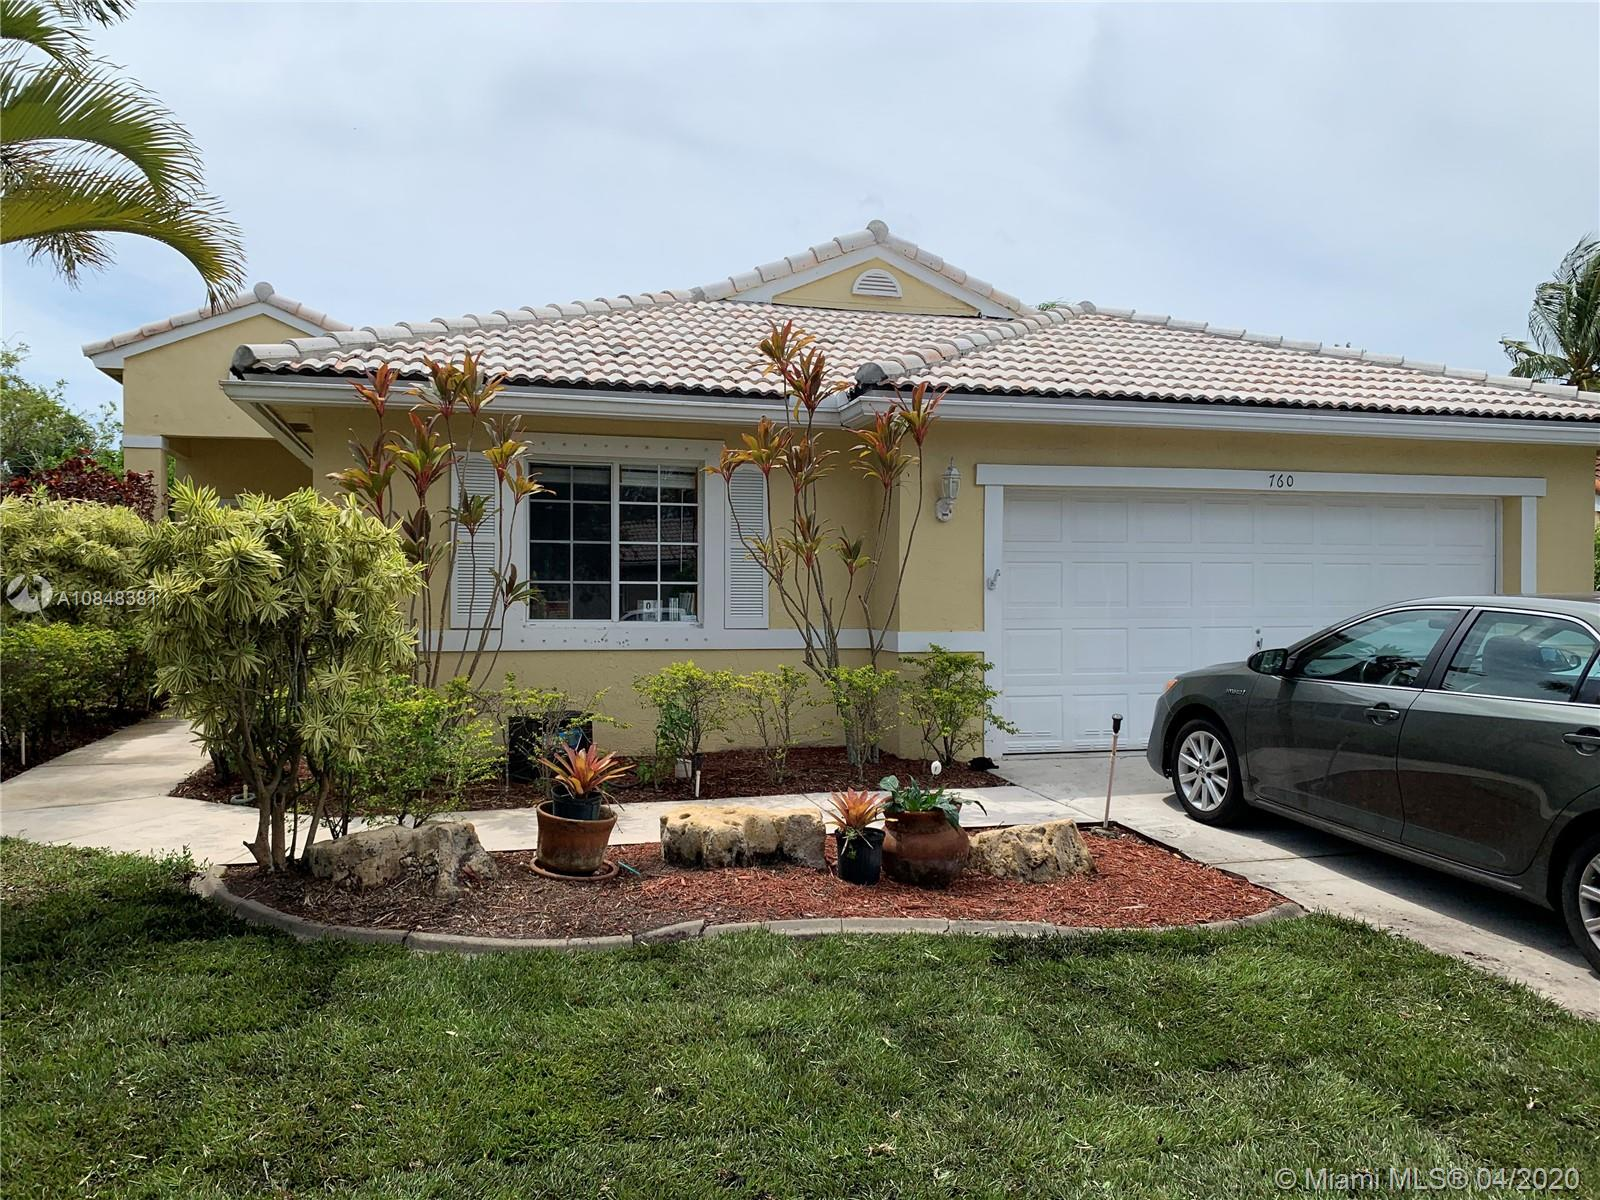 Beautiful 3/2 in the ever popular Pembroke Pines Florida. Located within the nestled the Pembroke Shores community this home is poised for amazing sunsets from your waterfront in-ground pool.  Commuting has never been more convenient, seconds to I-75 and Turnpike or 595. The community has a ton of amenities such as gated security, HOA maintained community landscaping and it is zoned for some of the best rated A+ schools in the area. Tons of opportunities, amazing shopping malls and so many amazing restaurants with beautiful city and county parks with tons of activities like fishing, boating, biking and some of the best golf courses anywhere. Beautiful beaches are 30 minutes away and your choice of city nightlife anywhere. This home will guarantee happiness for years to come.